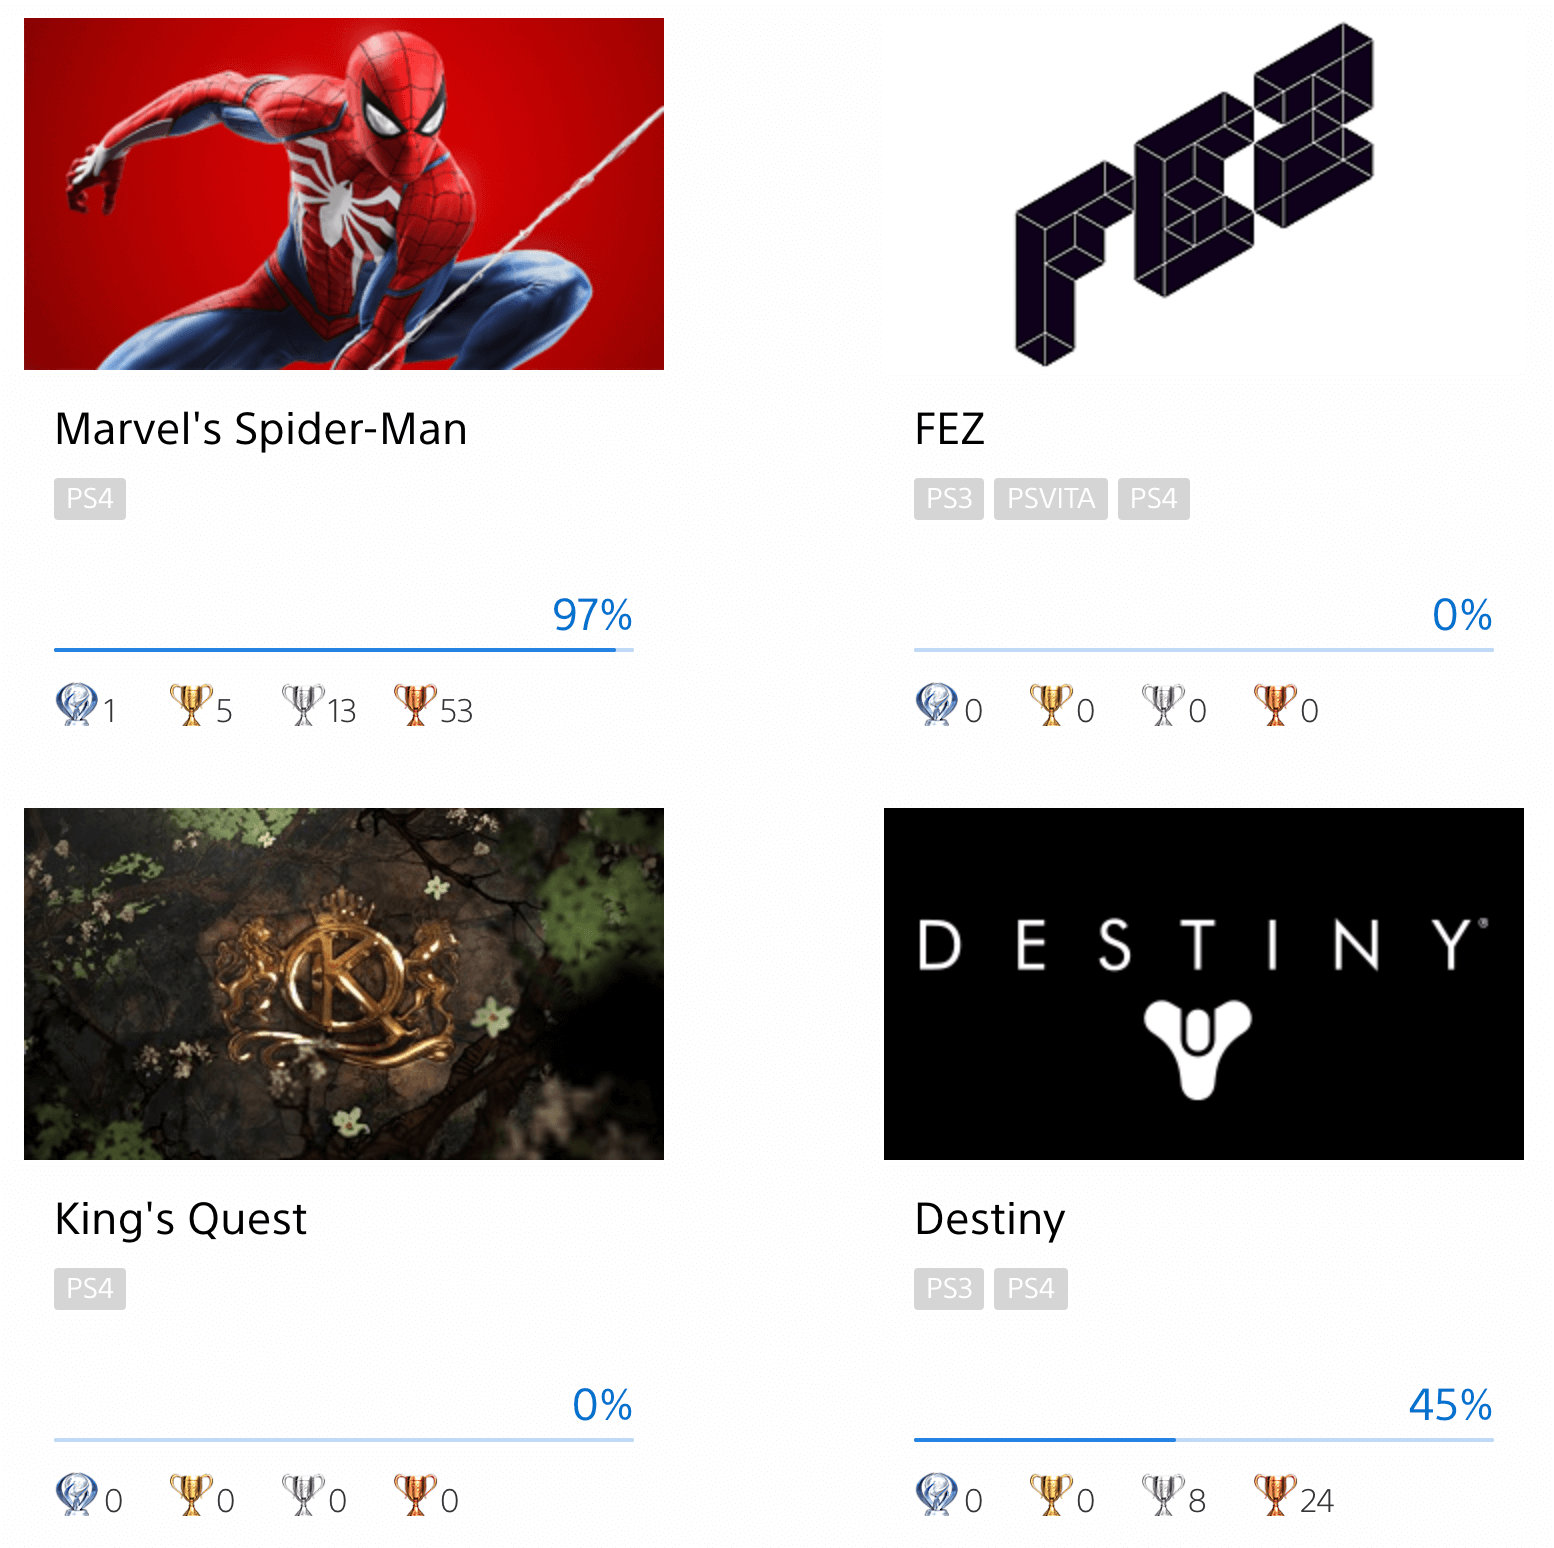 Even I'm surprised at have 45% of Destiny's achievements. 2 left for Spider-Man though. I really like PS4's Trophy range, but I also like Xbox's GS numbers.